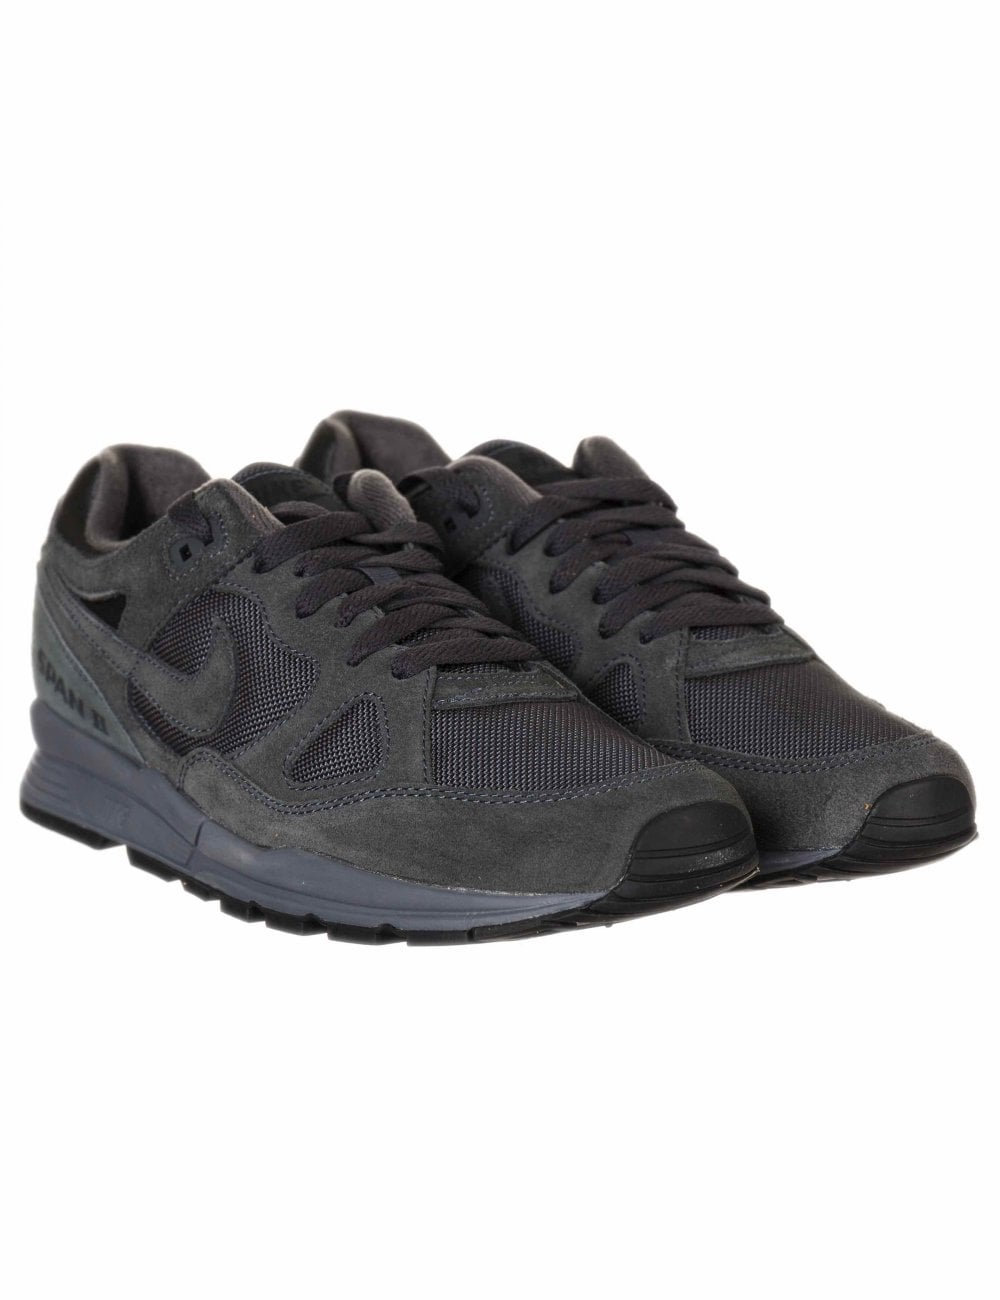 17f2c5f4f194 Nike Air Span II Trainers - Anthracite - Footwear from Fat Buddha ...